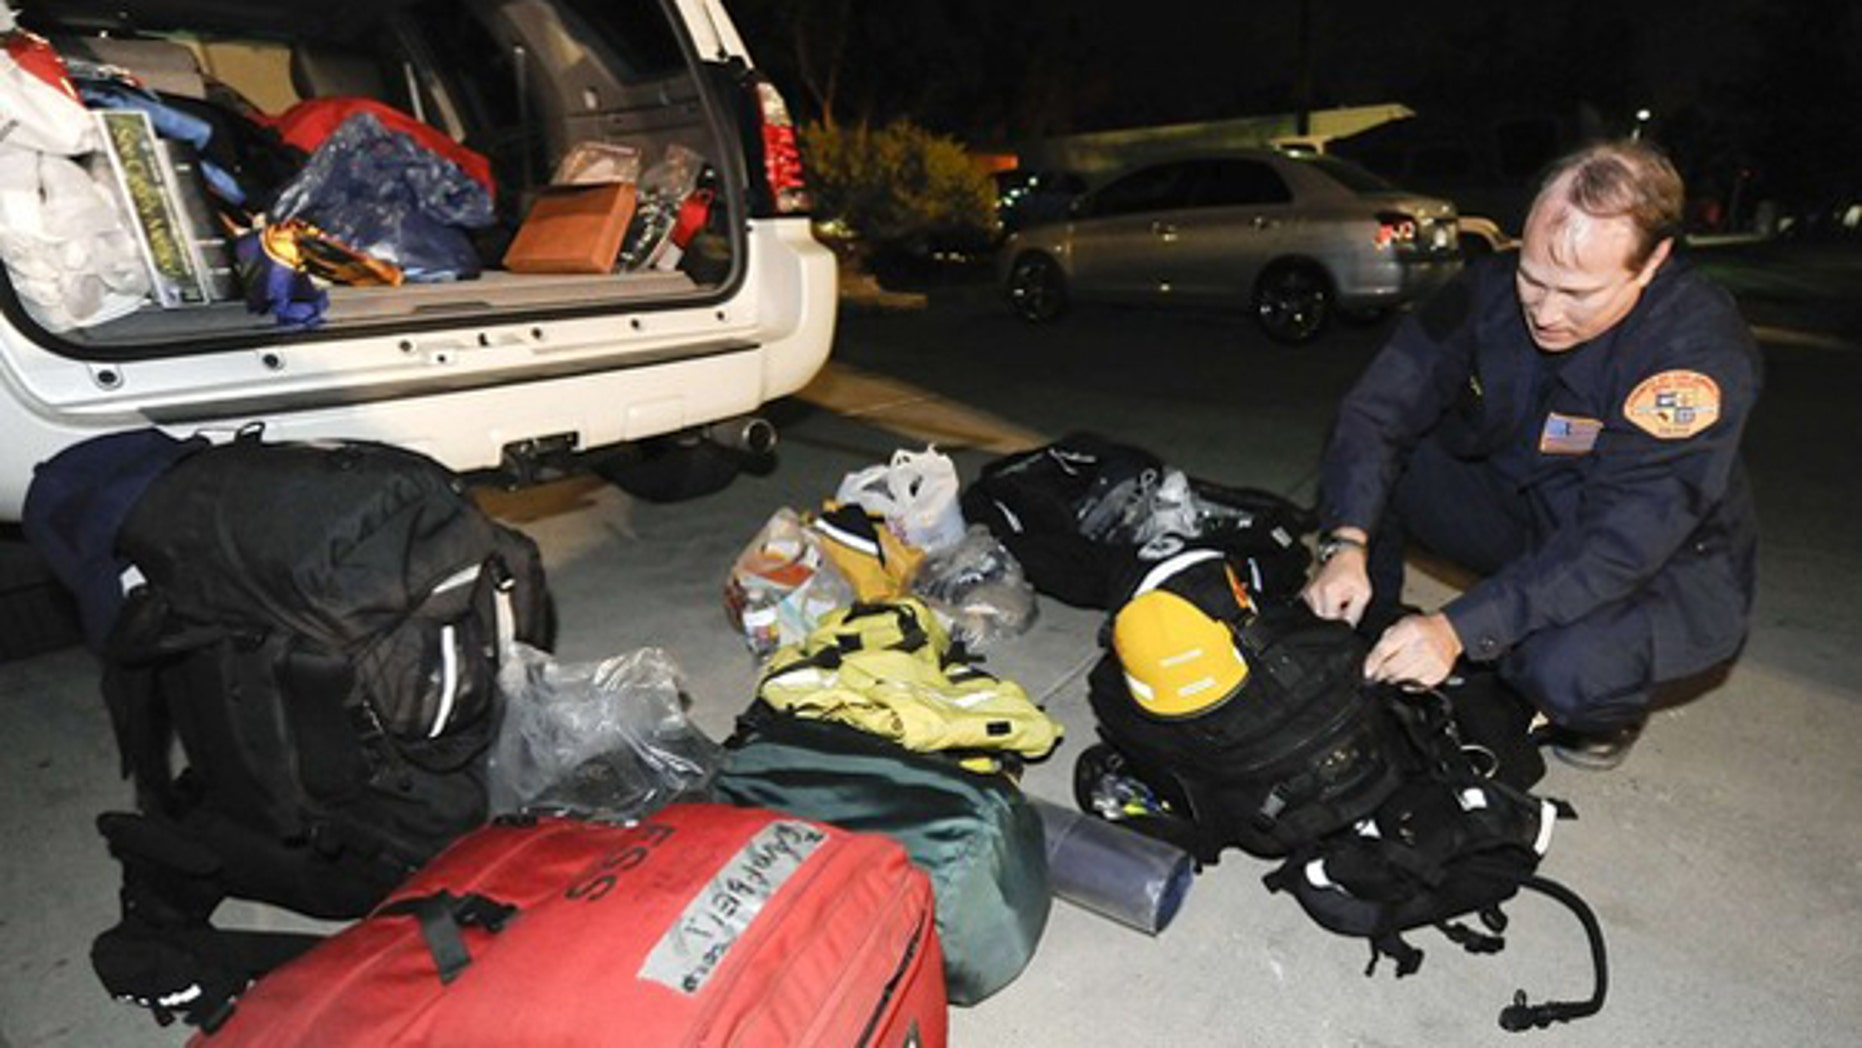 Los Angeles County Fire Department search-and-rescue technician Don Campbel prepares to depart for Haiti with his team Jan. 12. (Reuters Photo)